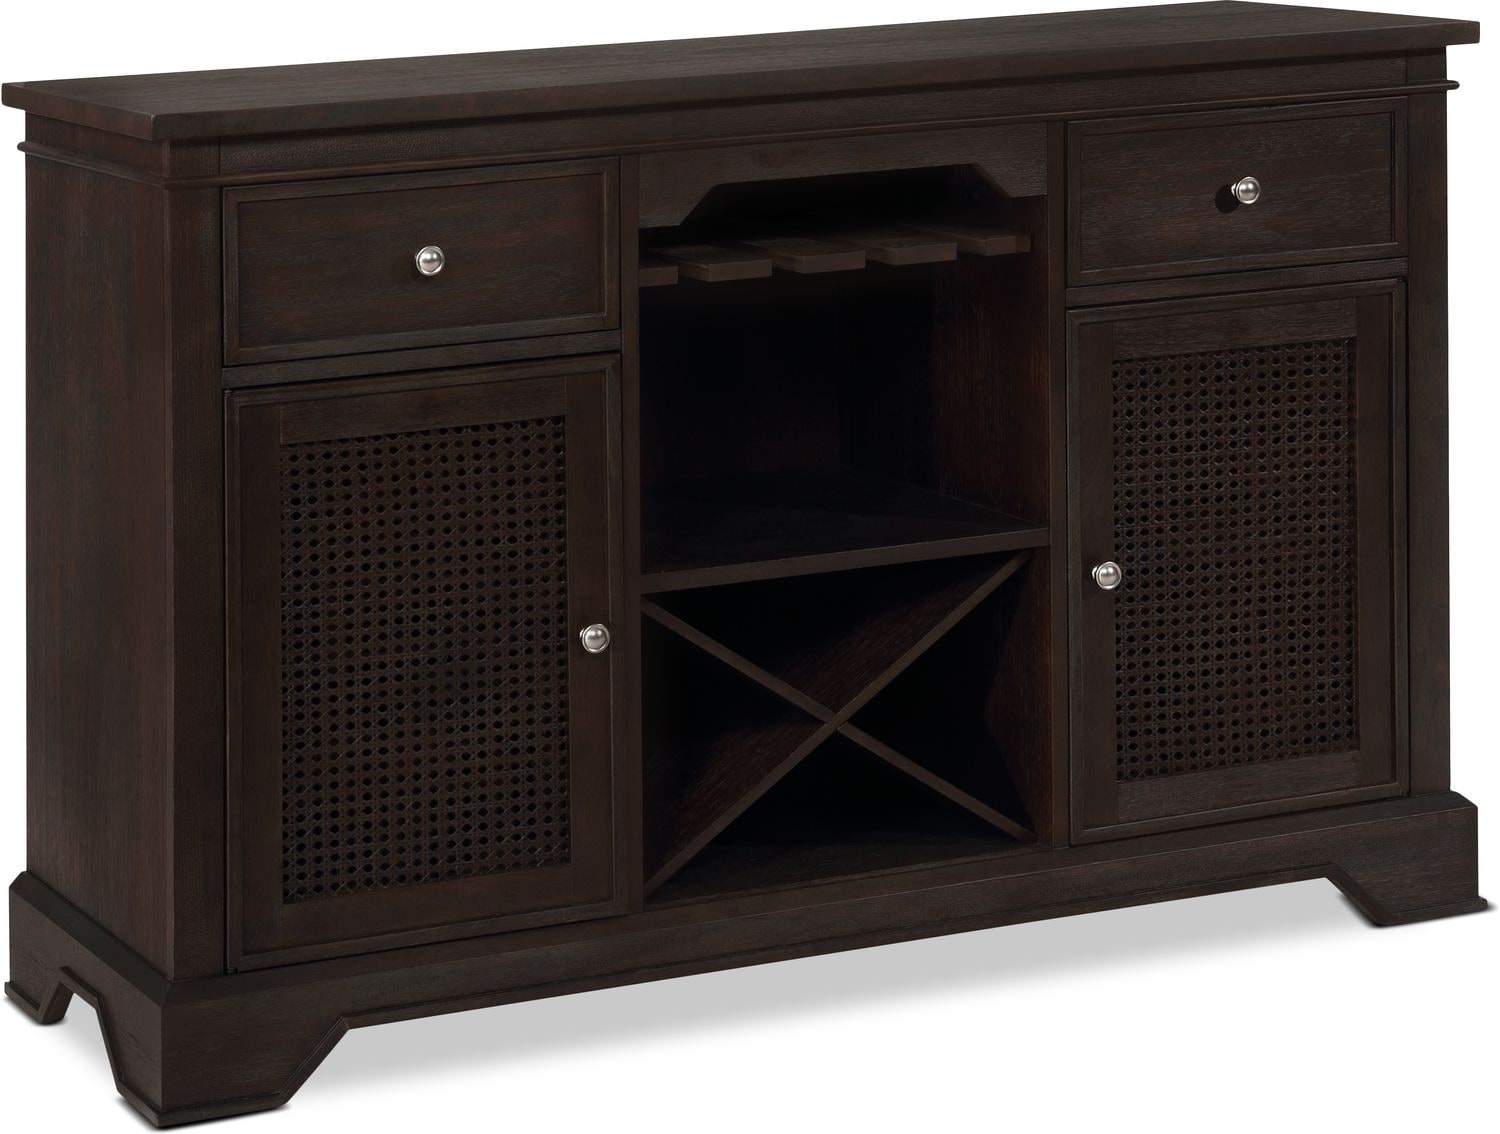 Dining Room Furniture - Wilder Sideboard